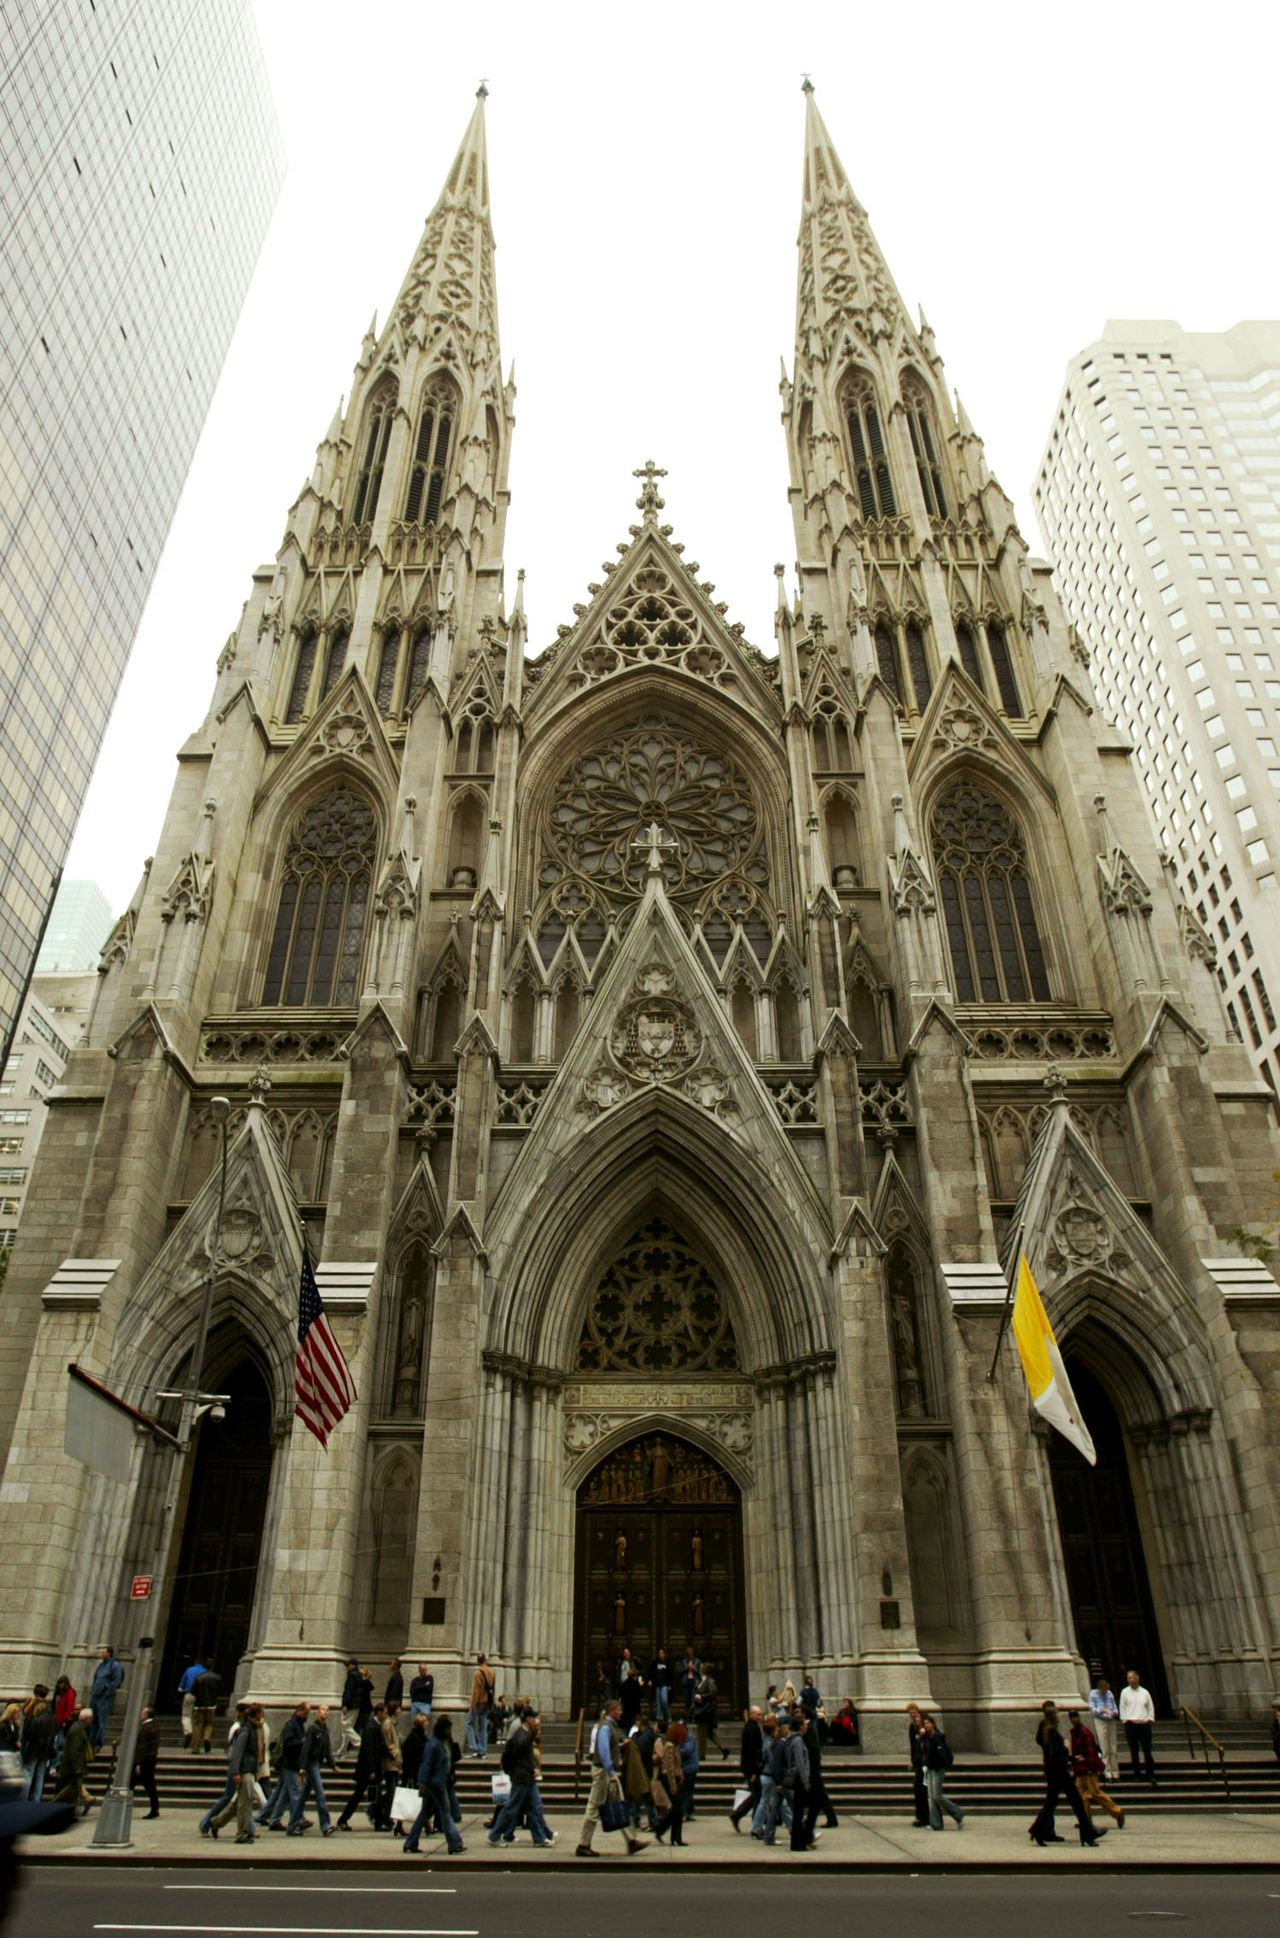 St. Patrick's Cathedral is seen 17 October 2003 in New York City. (Chris Hondros/Getty Images/AFP) -FOR NEWSPAPER AND TV USE ONLY-